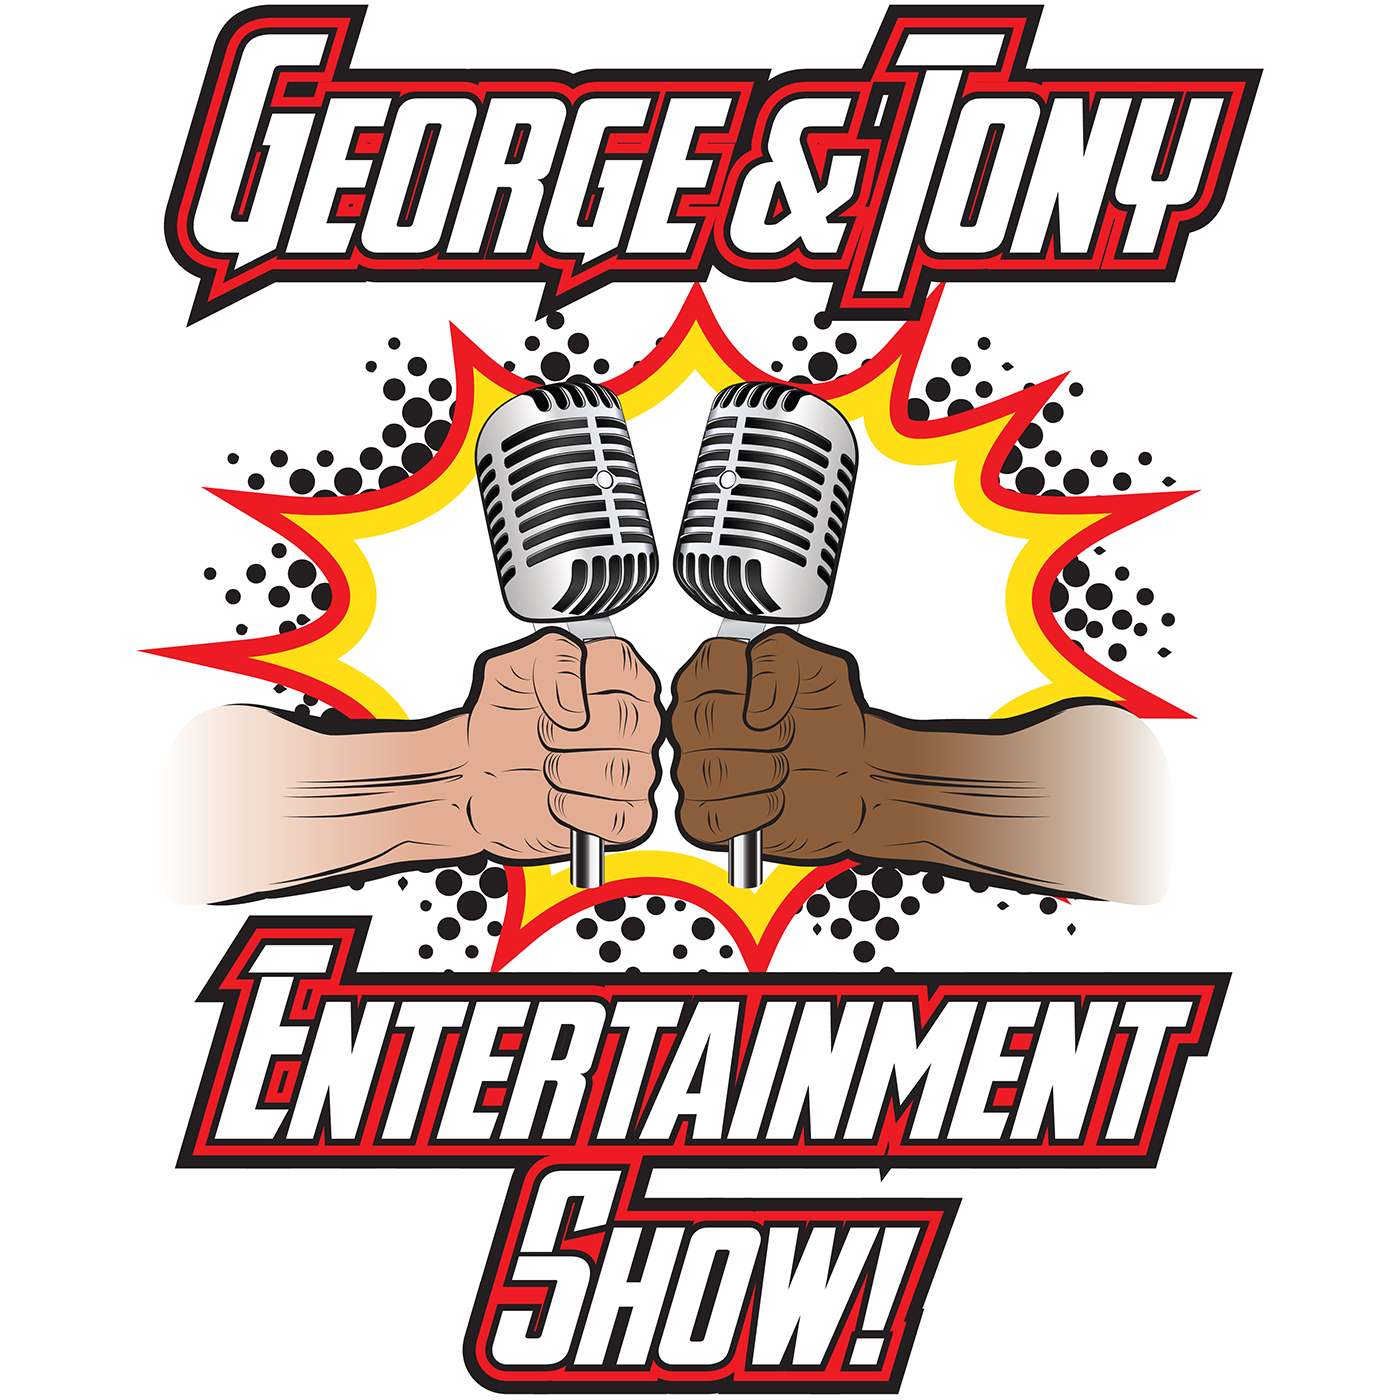 George and Tony Entertainment Show #146